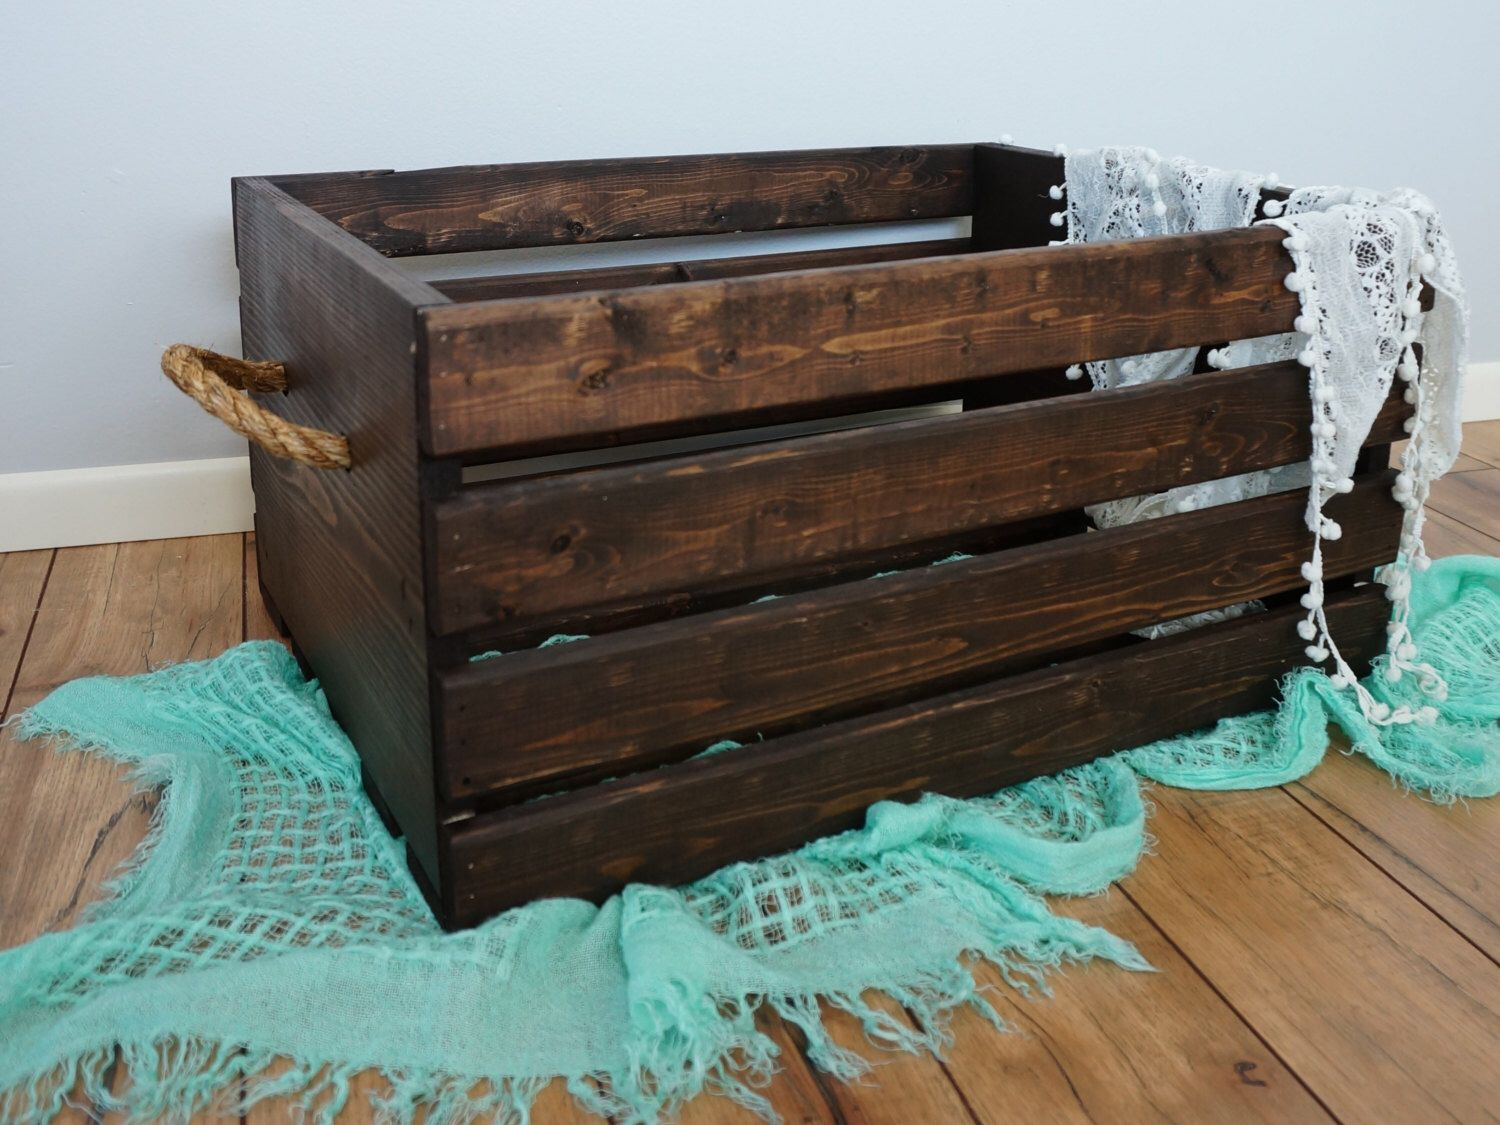 Rustic Wood Crate with Rope Handles - Large 20x16x11.75 by MatterofFractions on Etsy https://www.etsy.com/listing/224410709/rustic-wood-crate-with-rope-handles